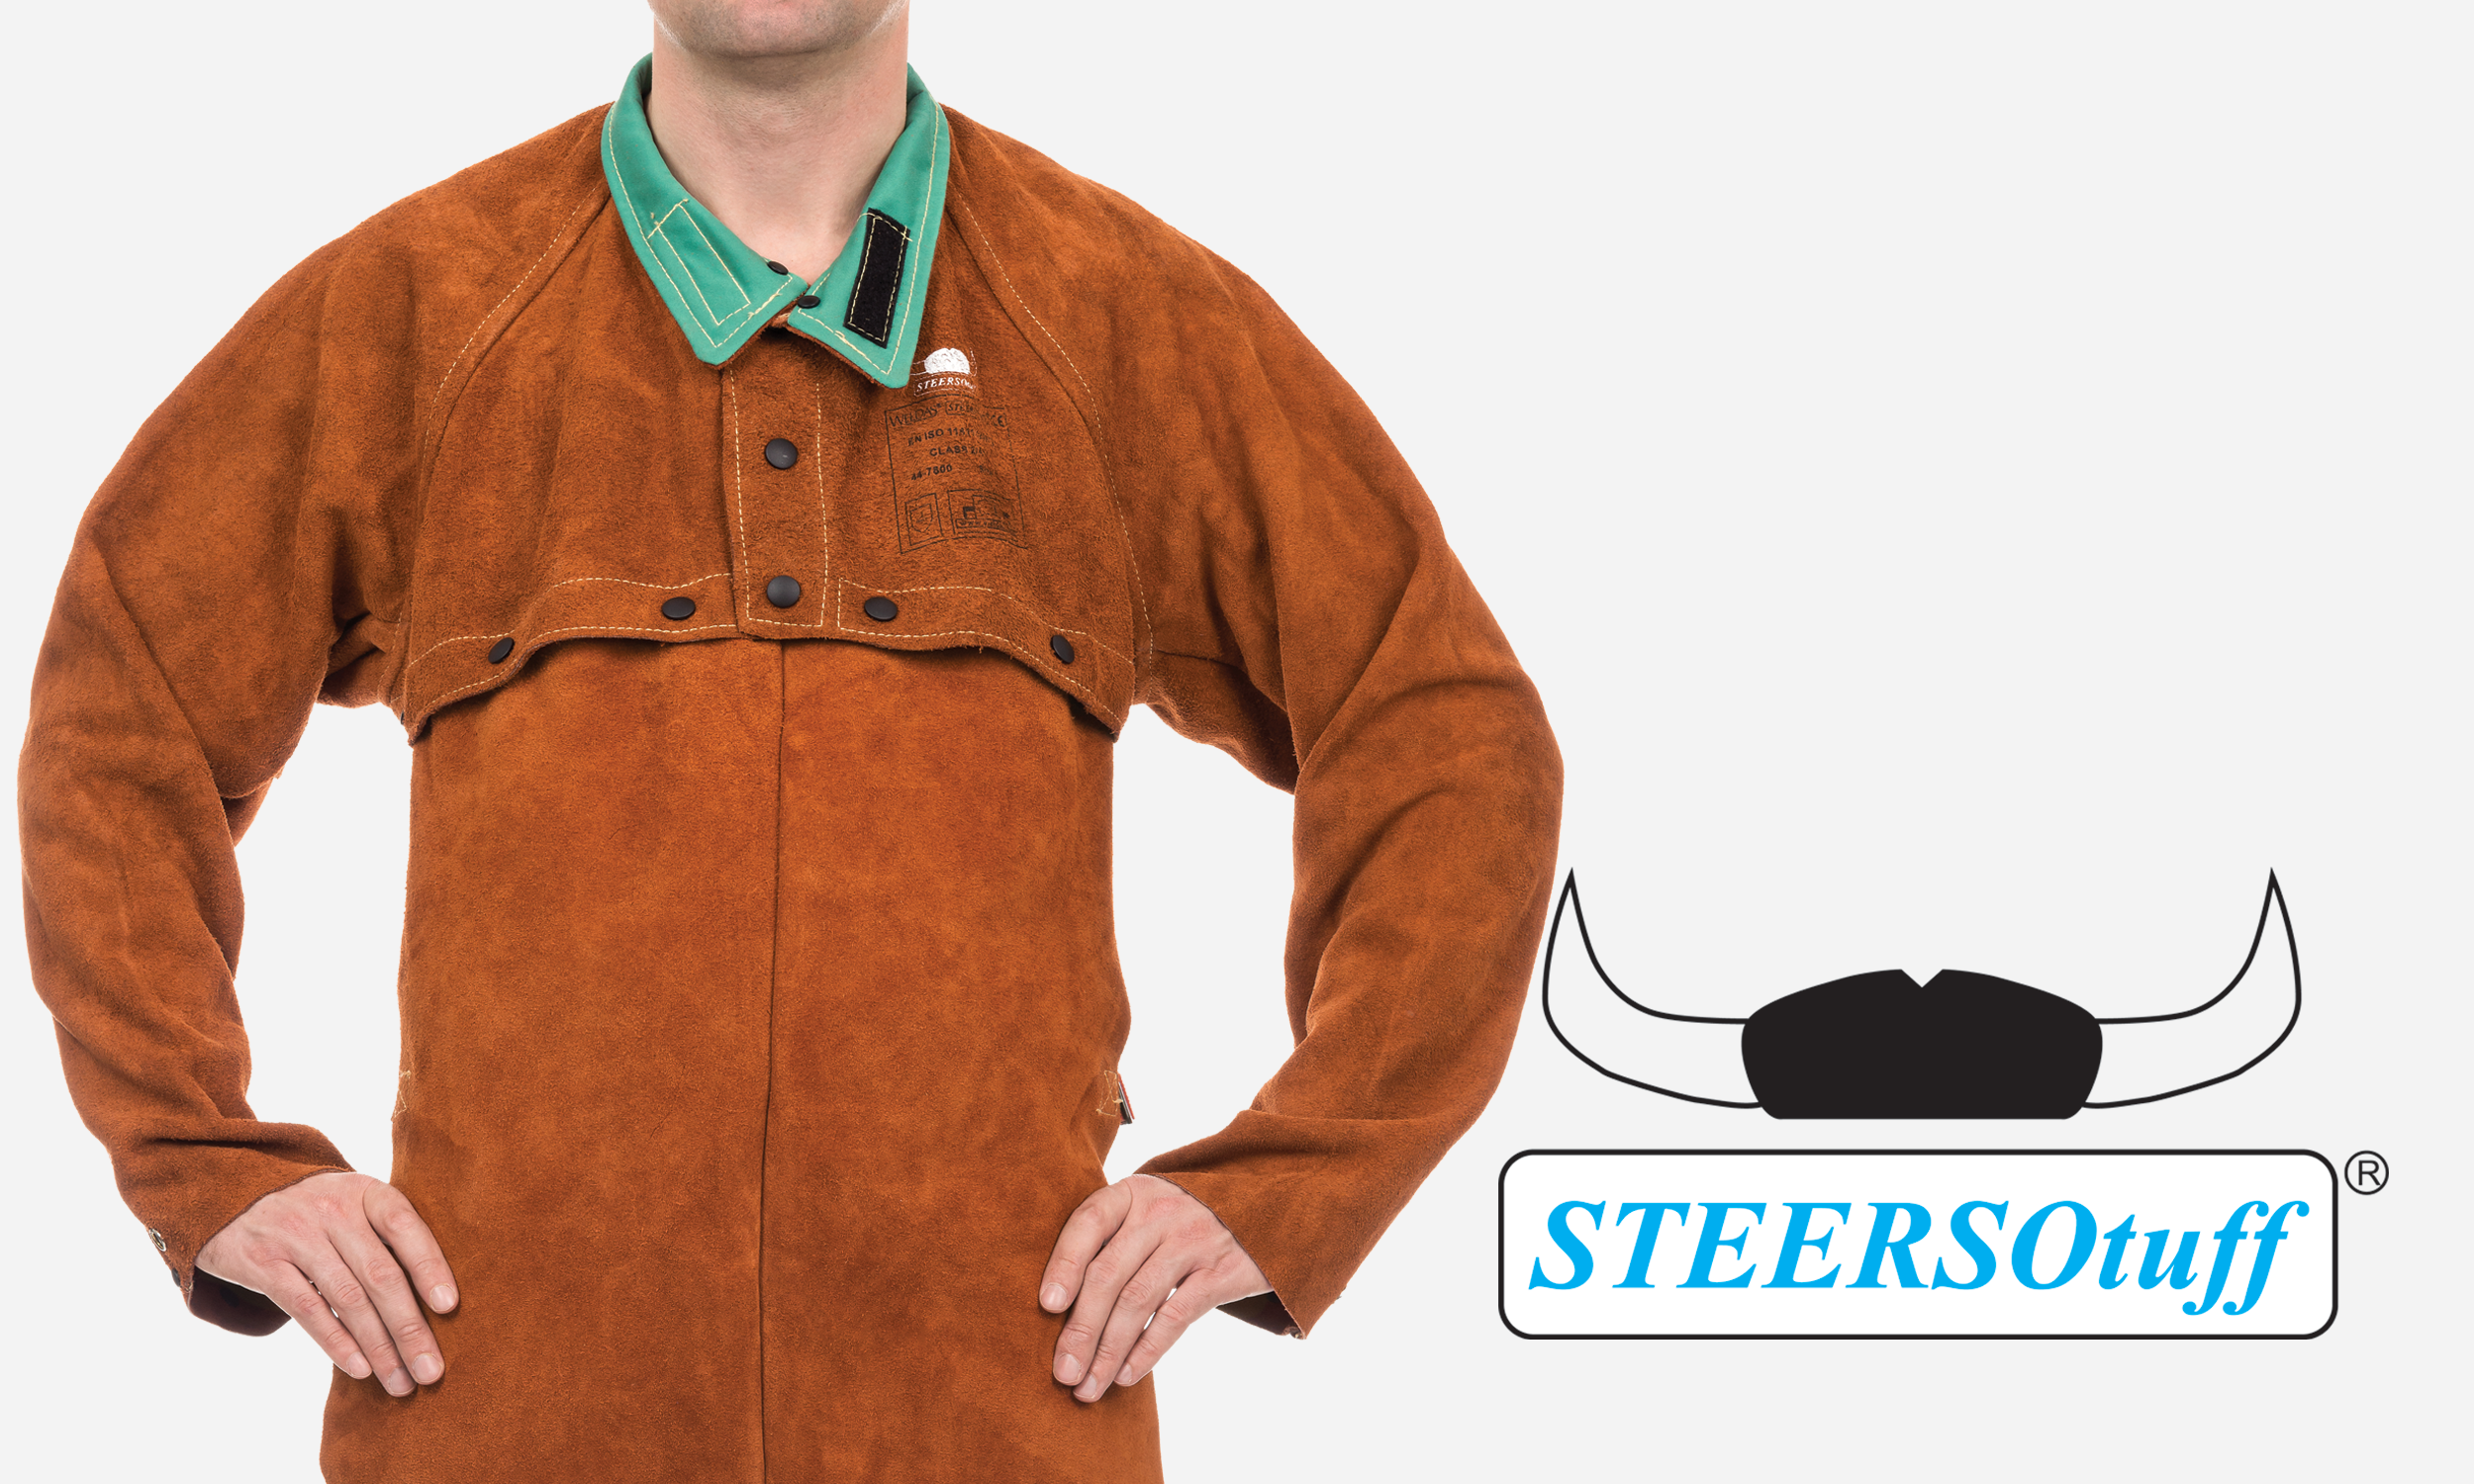 44-7800 STEERSOtuff Cape Sleeves.png